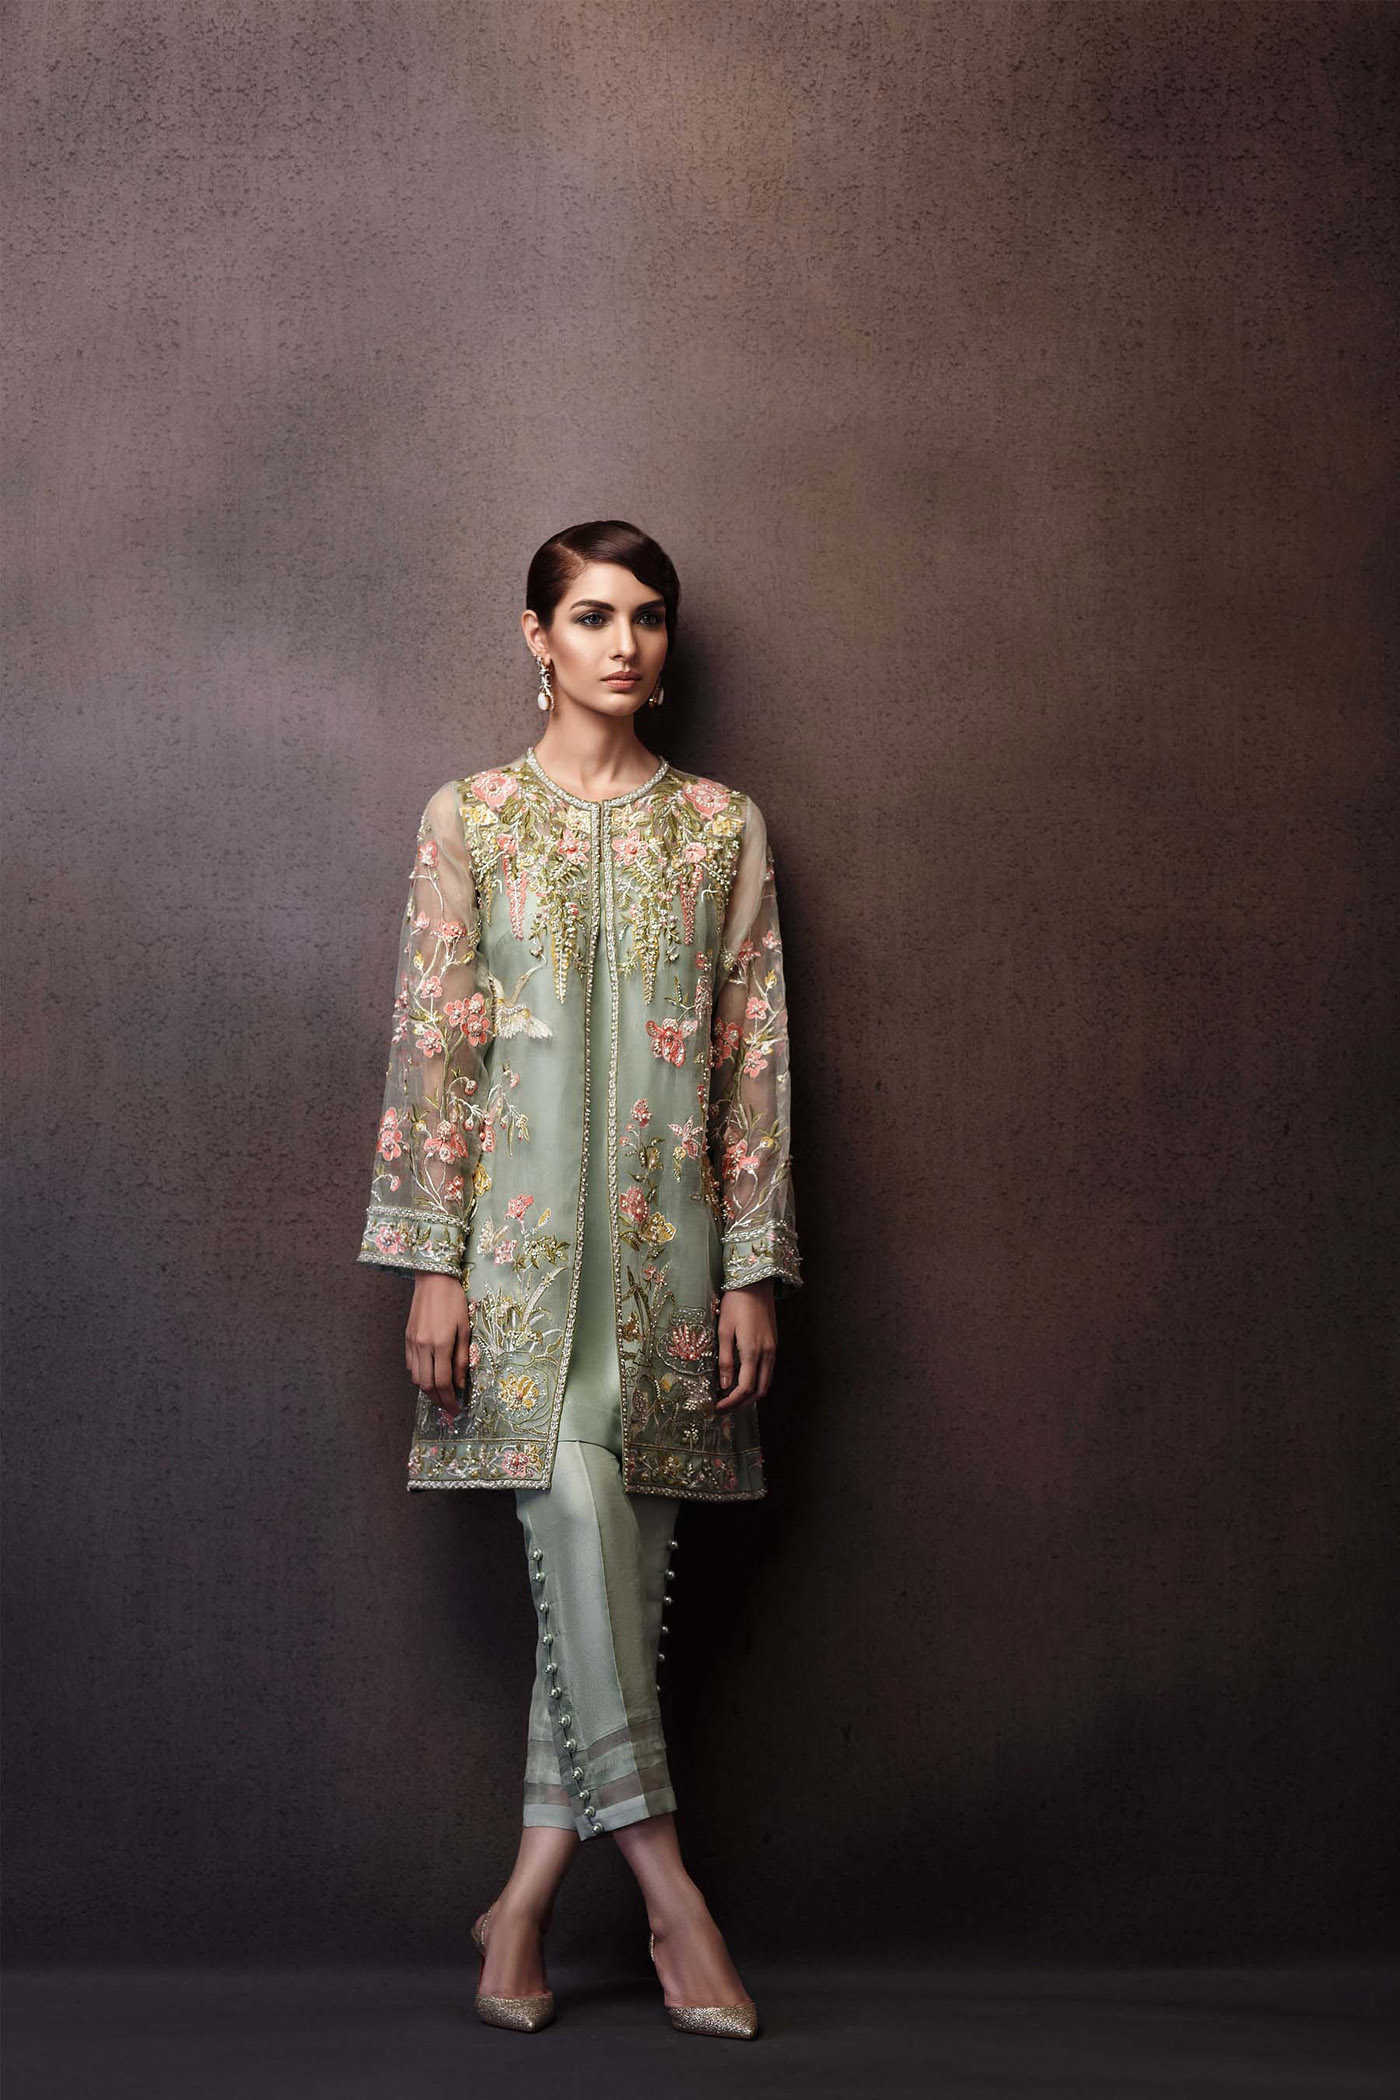 b0ec0d2e7e8 Pakistani Party Wear Embroidered Shirts 2019-2020 Latest Designs